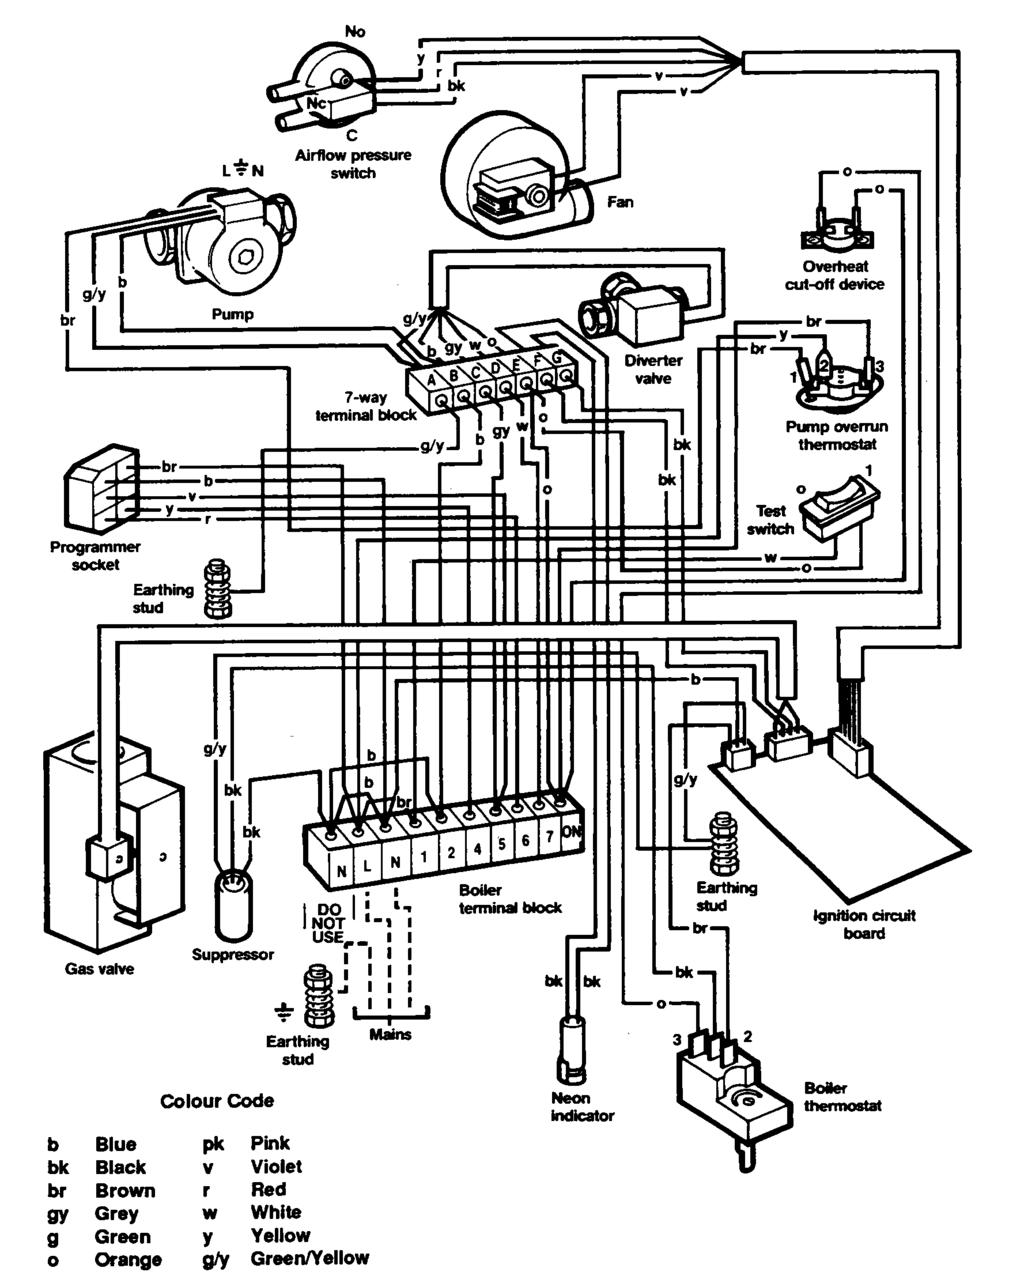 10. WIRING DIAGRAMS - PAGE 41 a.